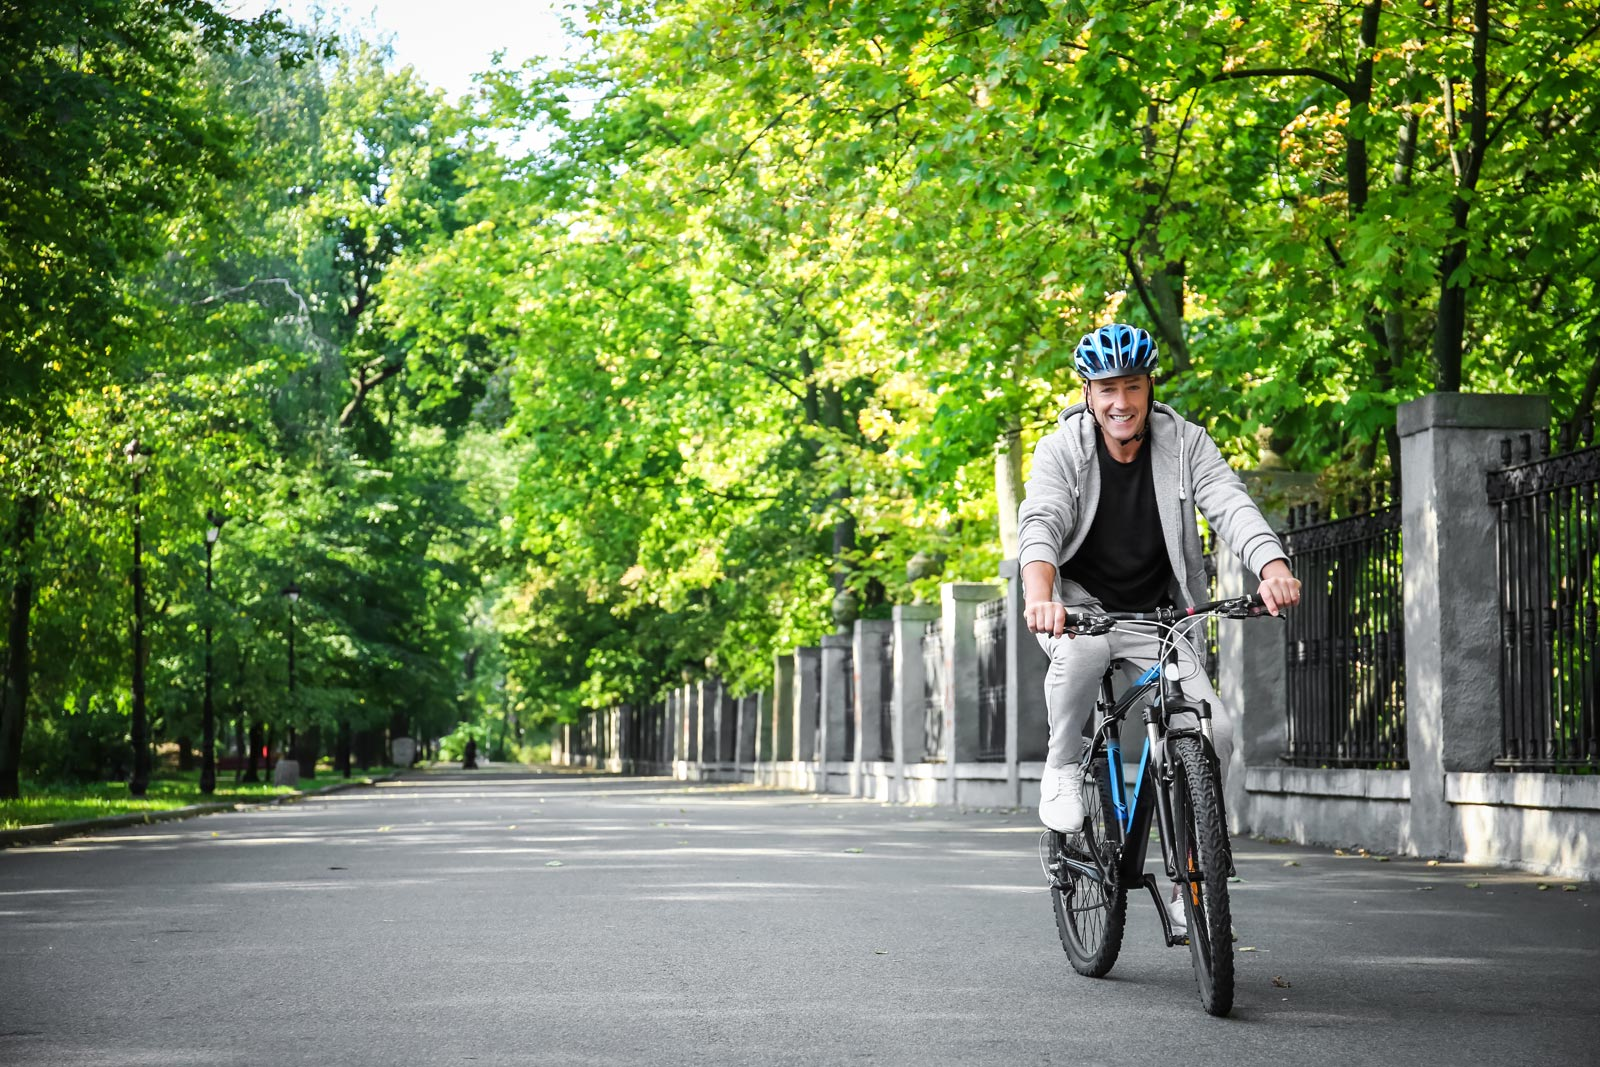 A man pedals on a bike path on a bicycle